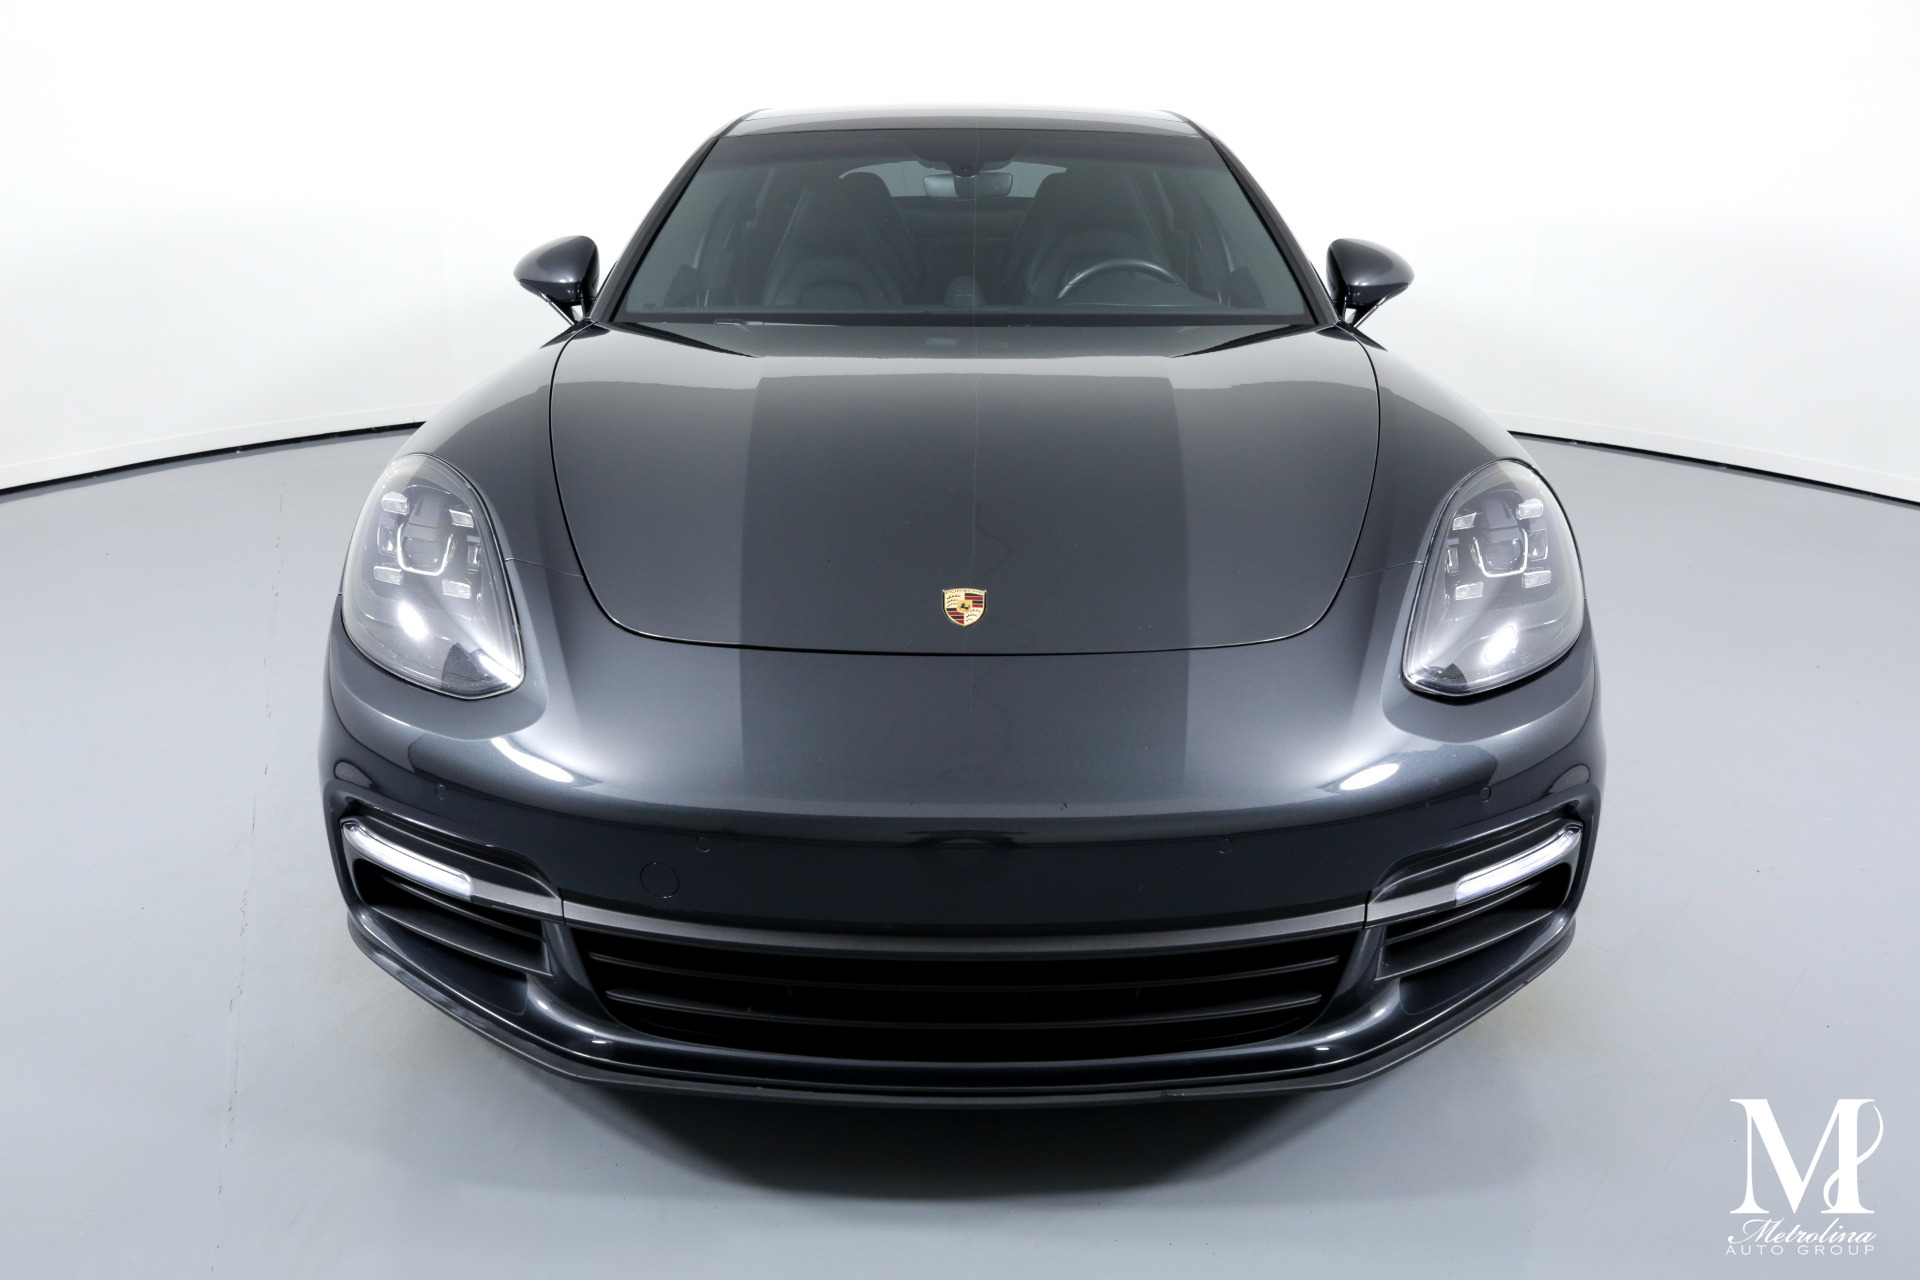 Used 2017 Porsche Panamera for sale $66,996 at Metrolina Auto Group in Charlotte NC 28217 - 3